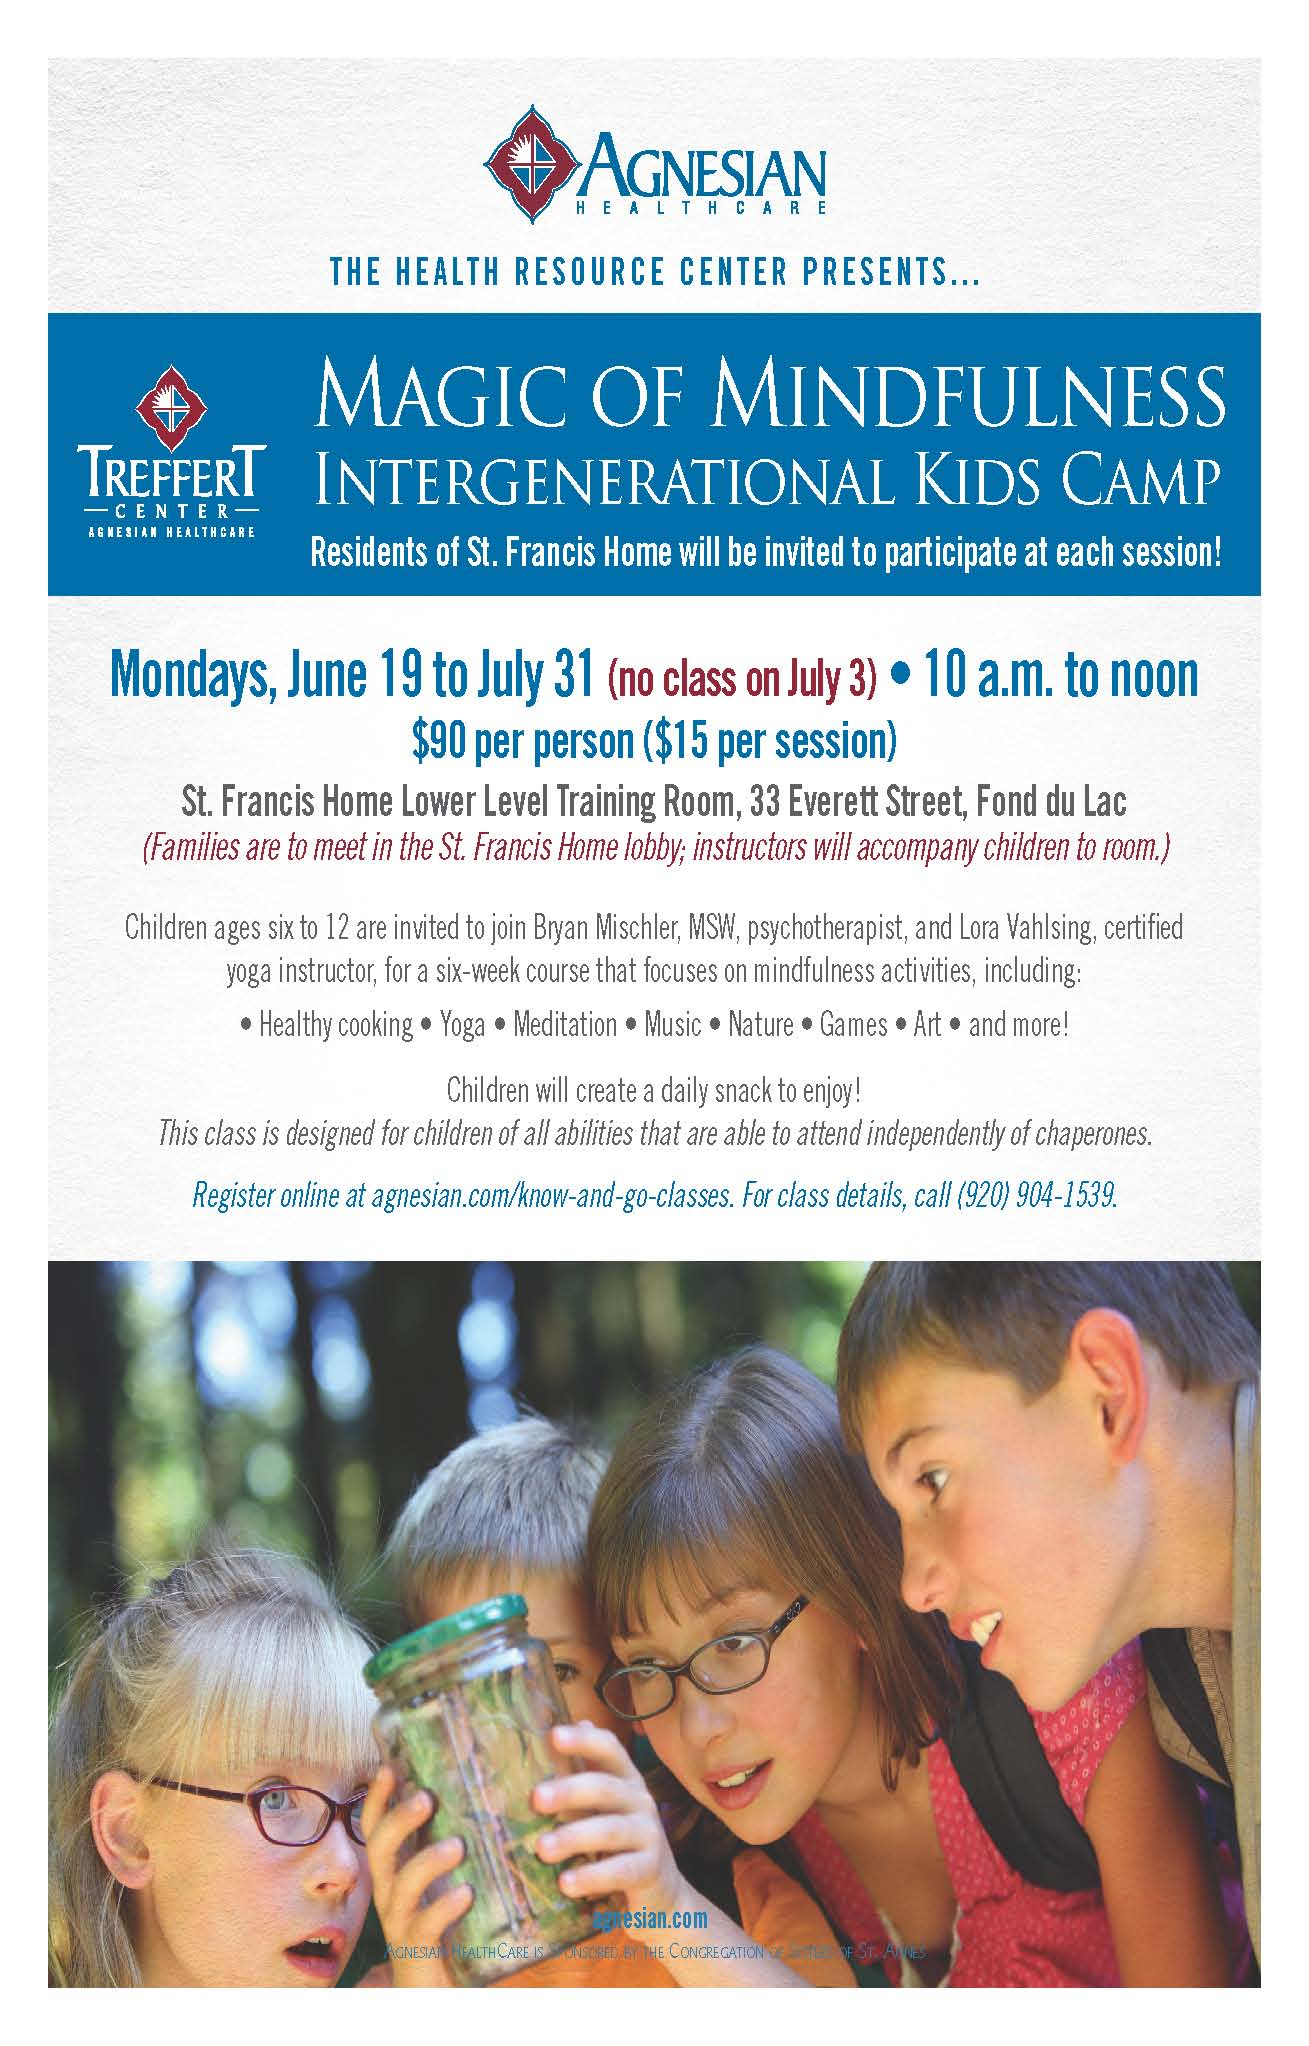 - Magic of MindfulnessSummer, 2017. This camp was in conjunction with The Treffert Center and Agnesian Hospital. Each camp session children did yoga, meditation, took a nature walk, slowed down and noticed the beauty and wonder around them.